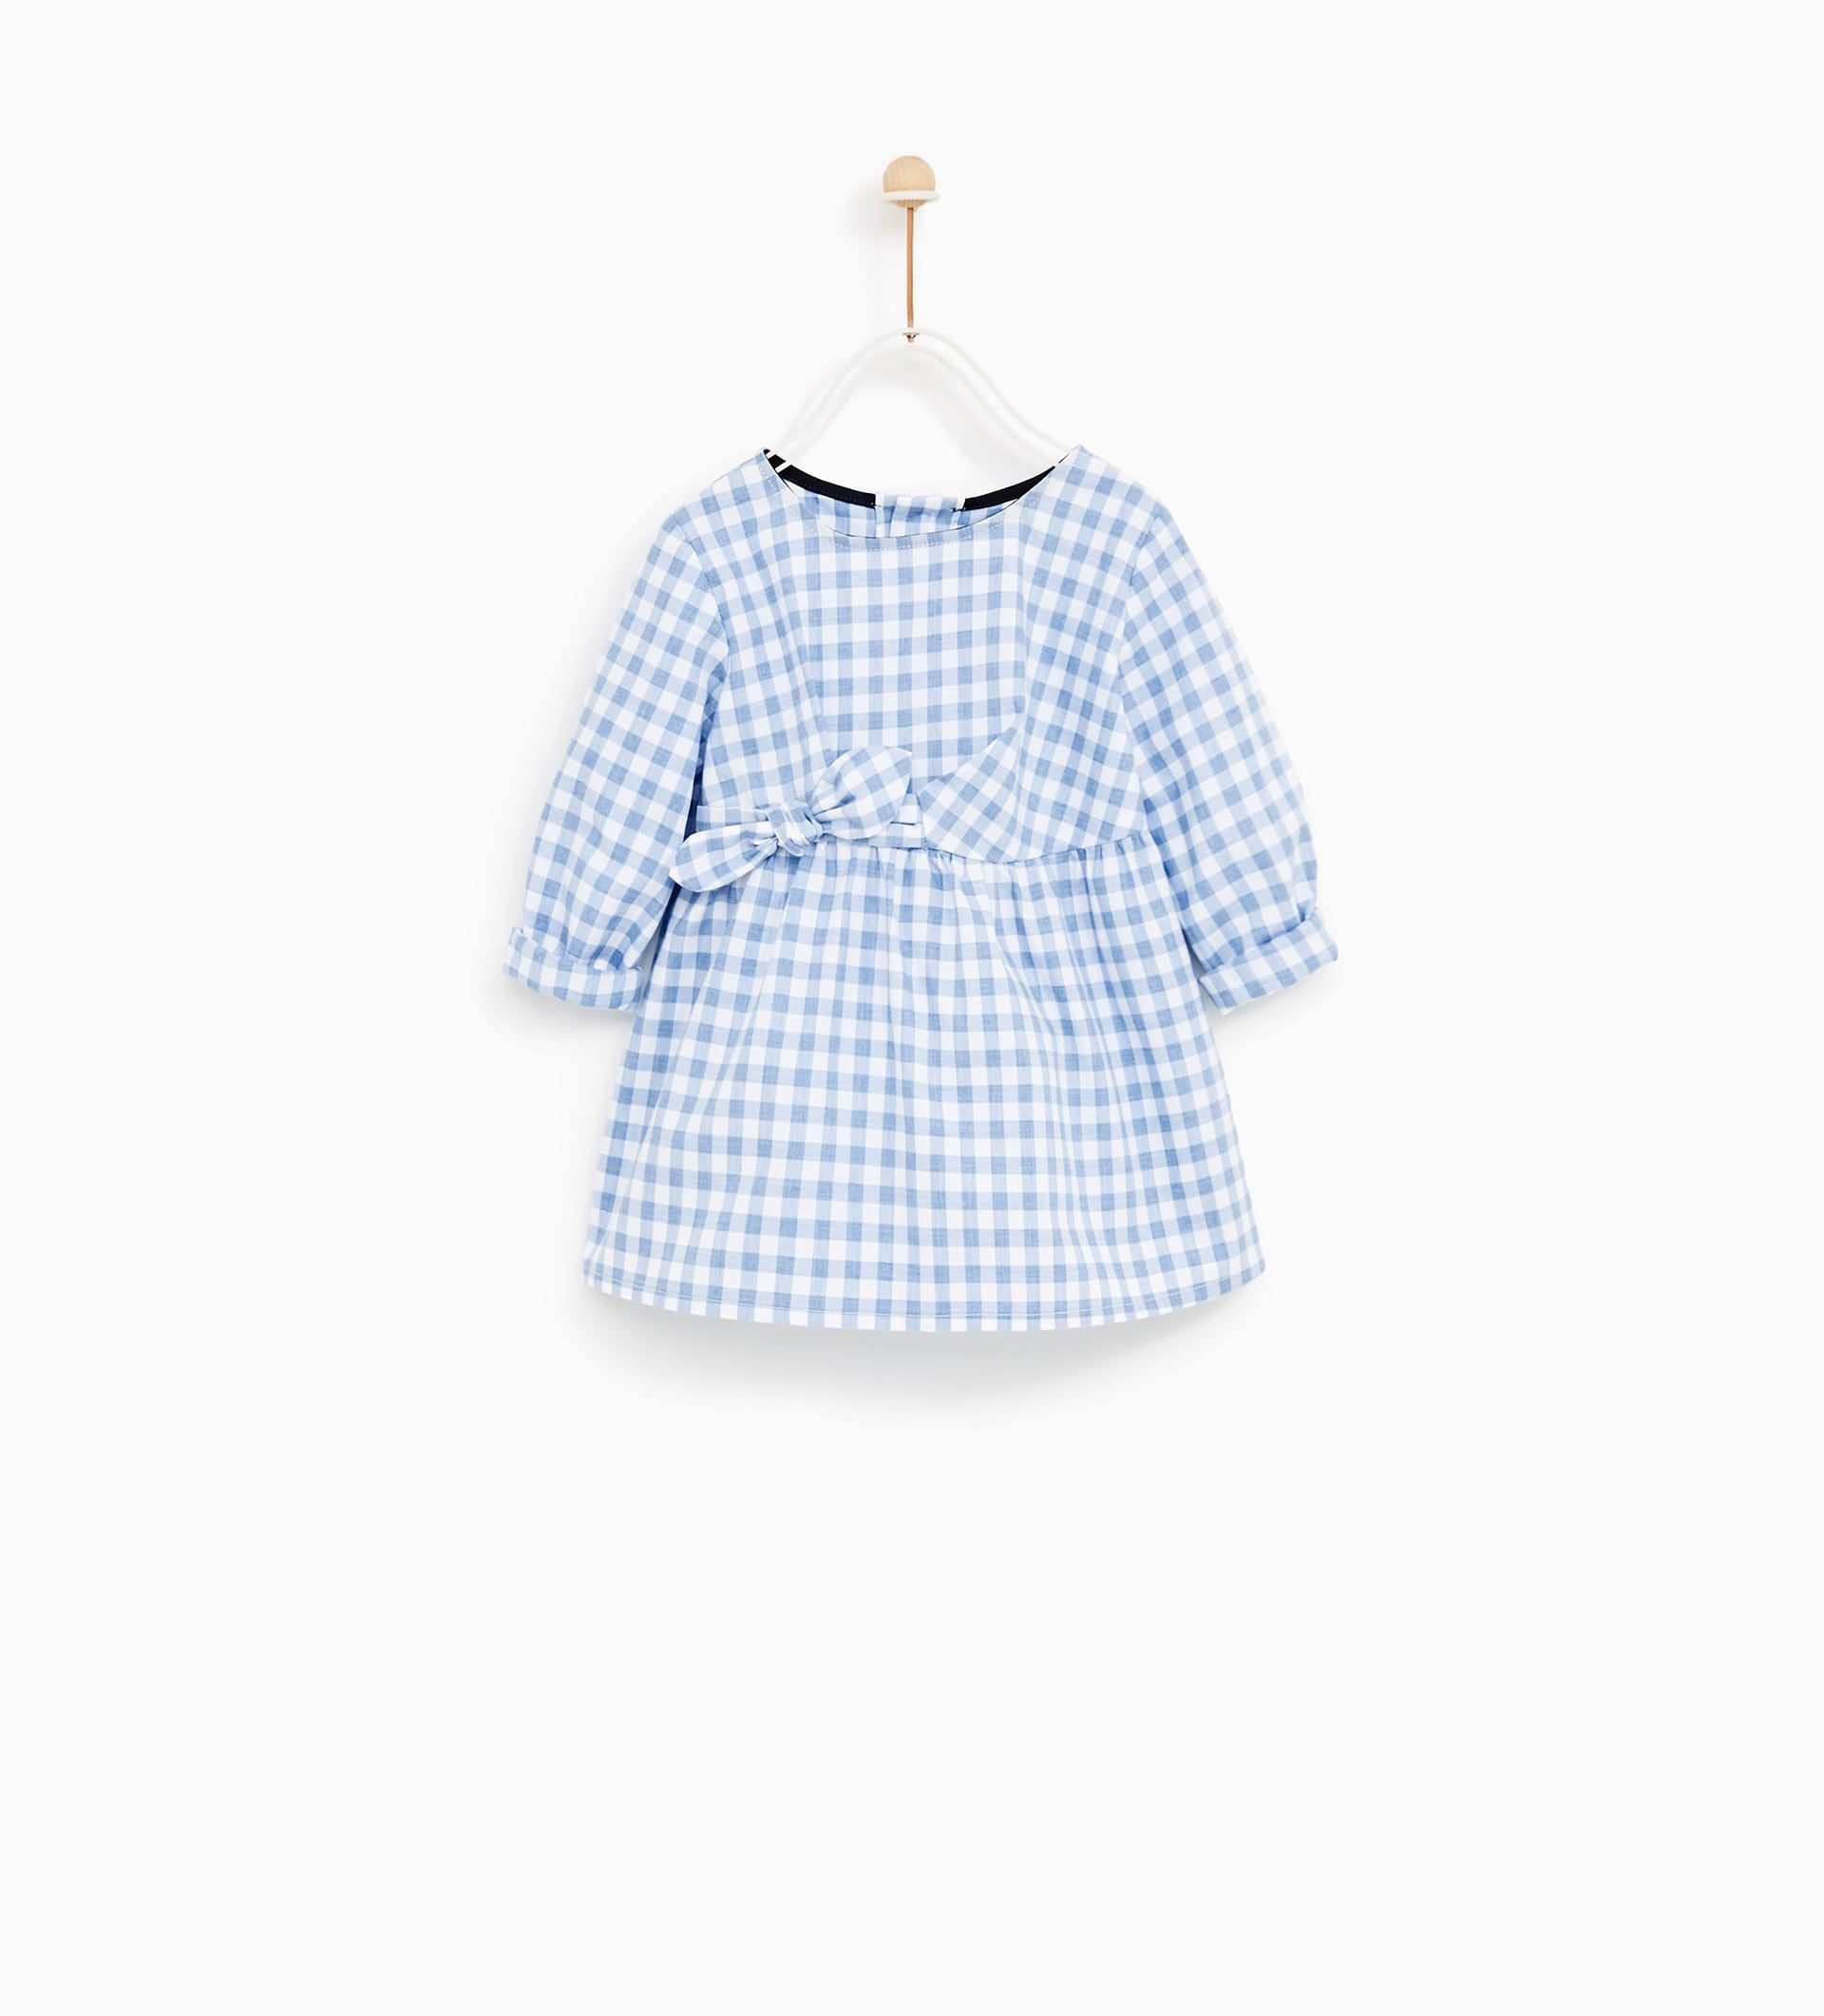 c8a40fb7d3 Image 2 of KNOTTED GINGHAM DRESS from Zara | Scarlett-Rose | Kids ...